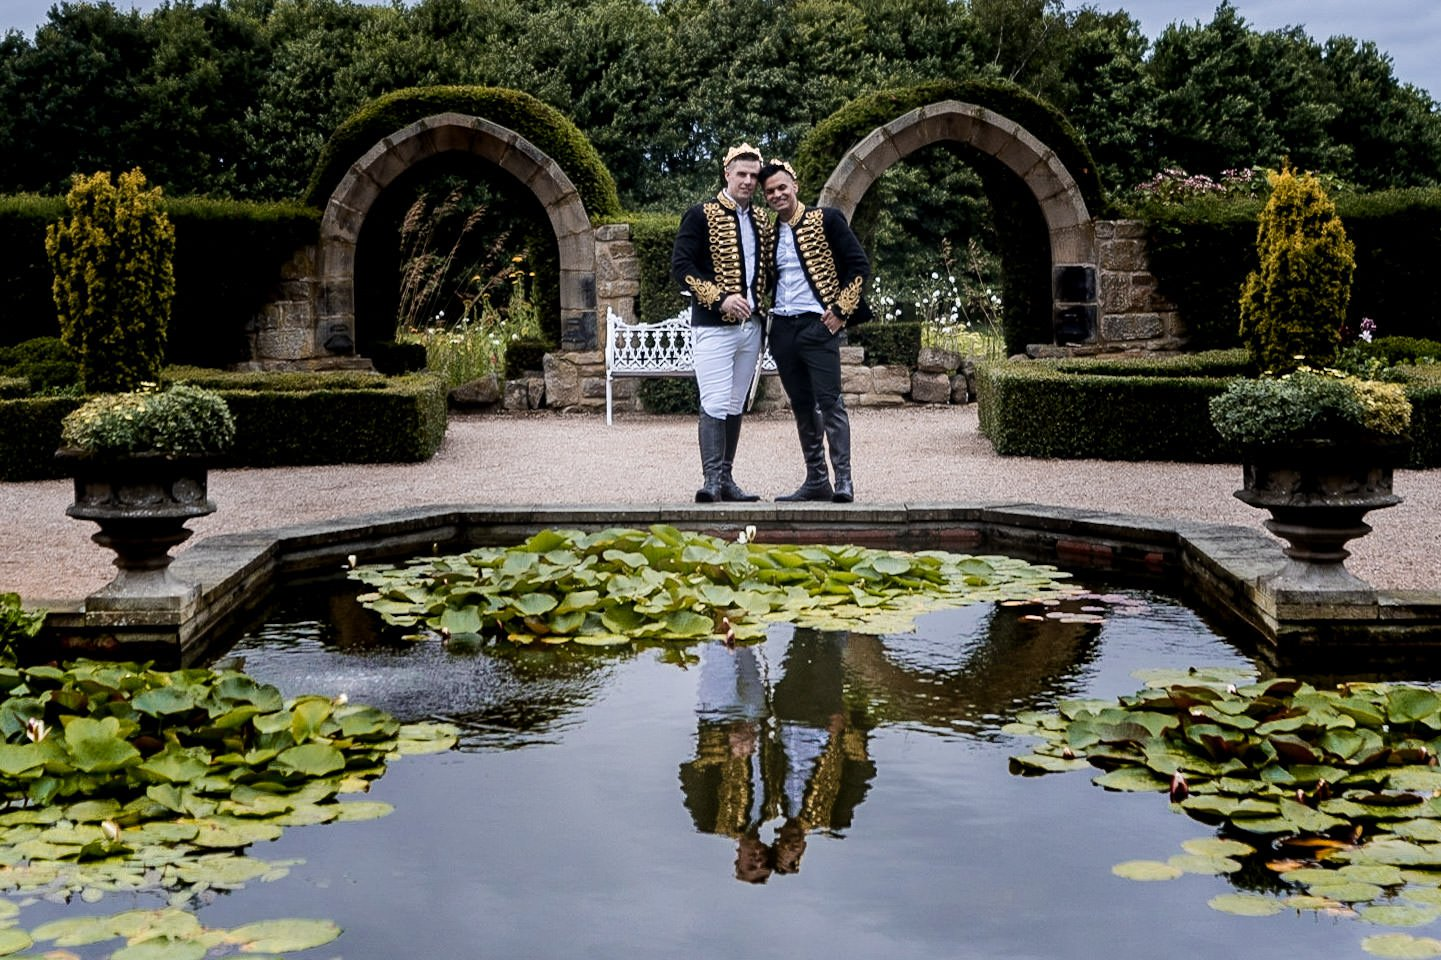 Allerton Castle Knaresborough Hutchinson Weddings Photography Groom and groom by the edge of the reflecting pool in the memorial garden